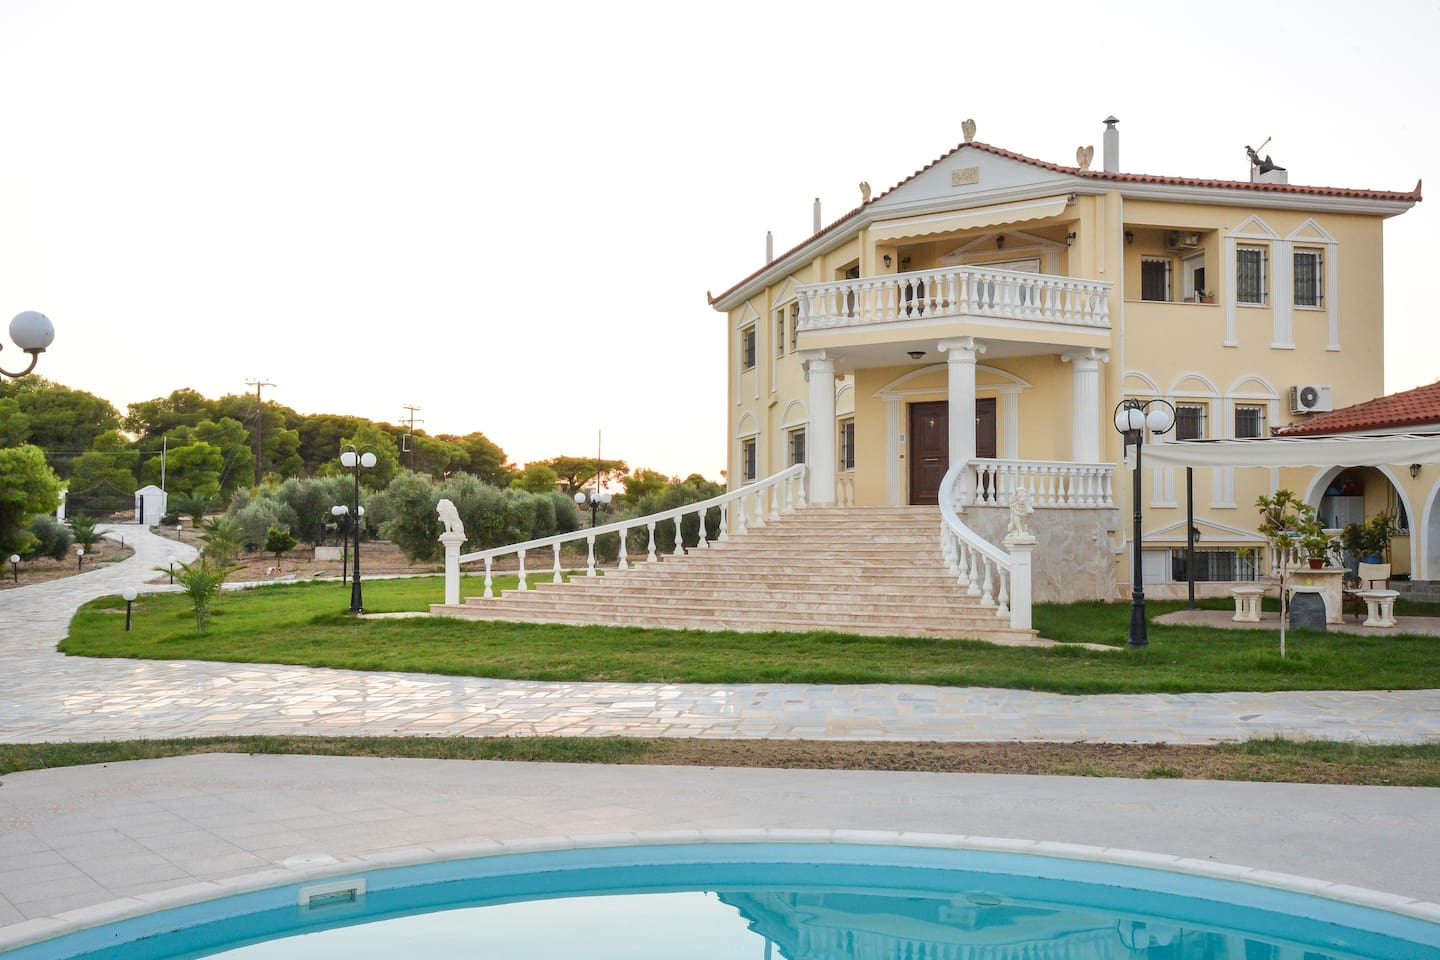 From the pool, looking towards the Villa and the marble path ending up to the main gates